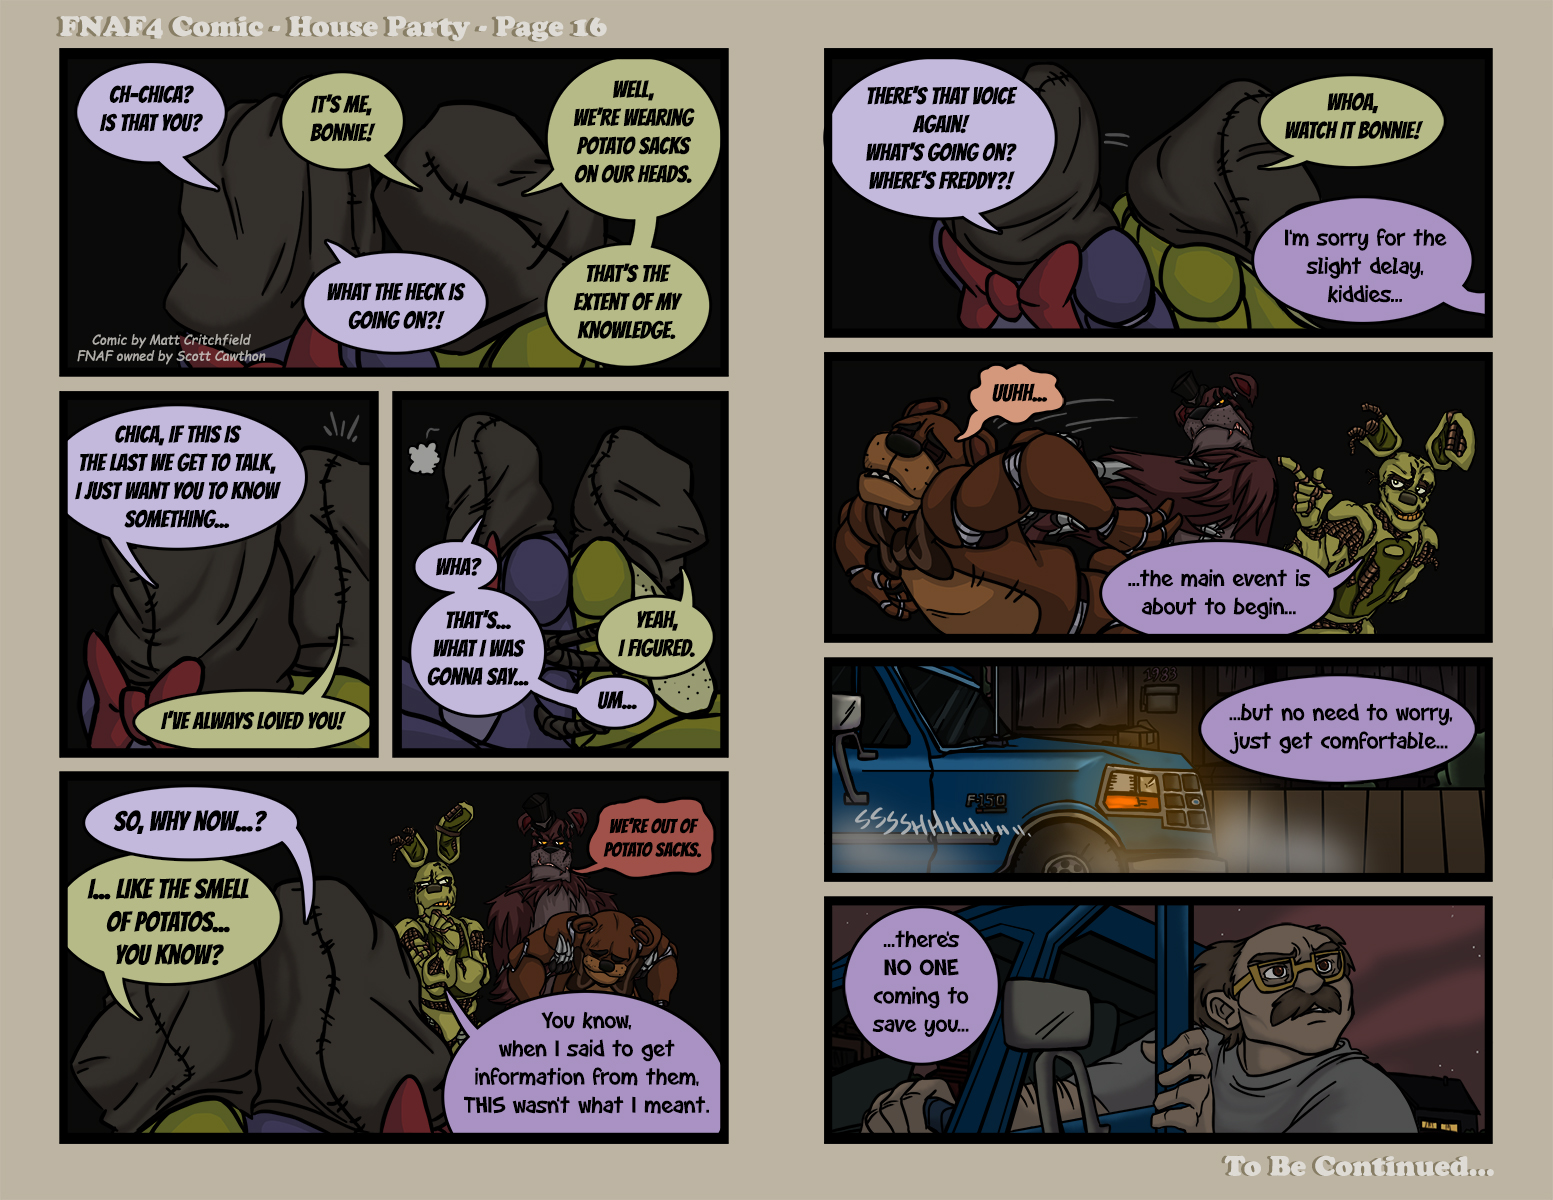 FNAF4 Comic - House Party - Page 16 - 7-8-16 by ...